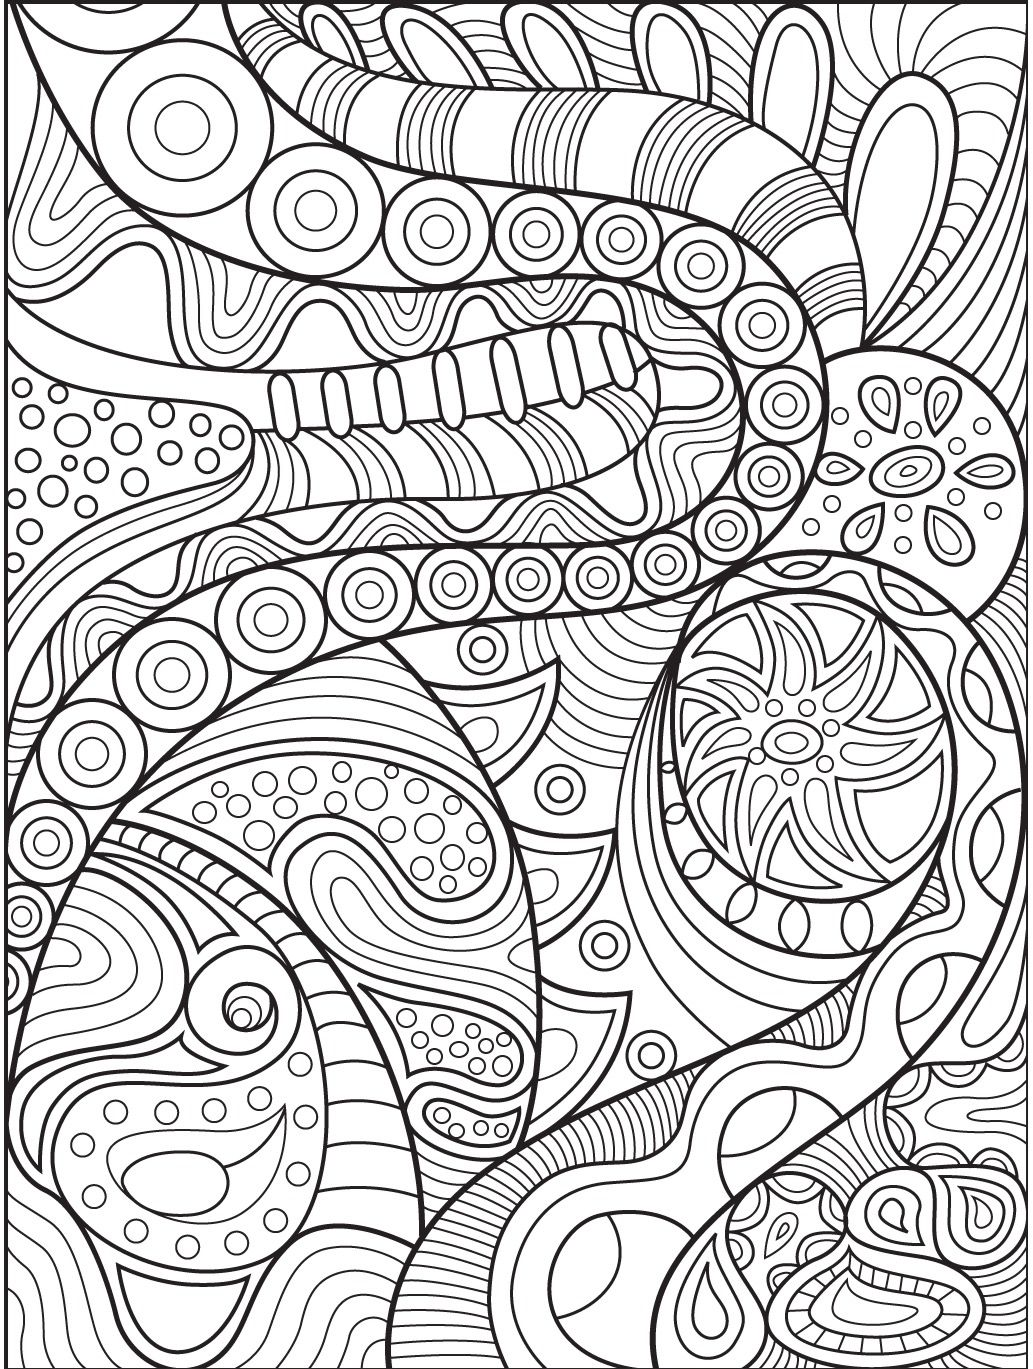 Abstract Coloring Page On Colorish Coloring Book App For Adults By Goodsofttech Abstract Coloring Pages Mandala Coloring Pages Coloring Book App